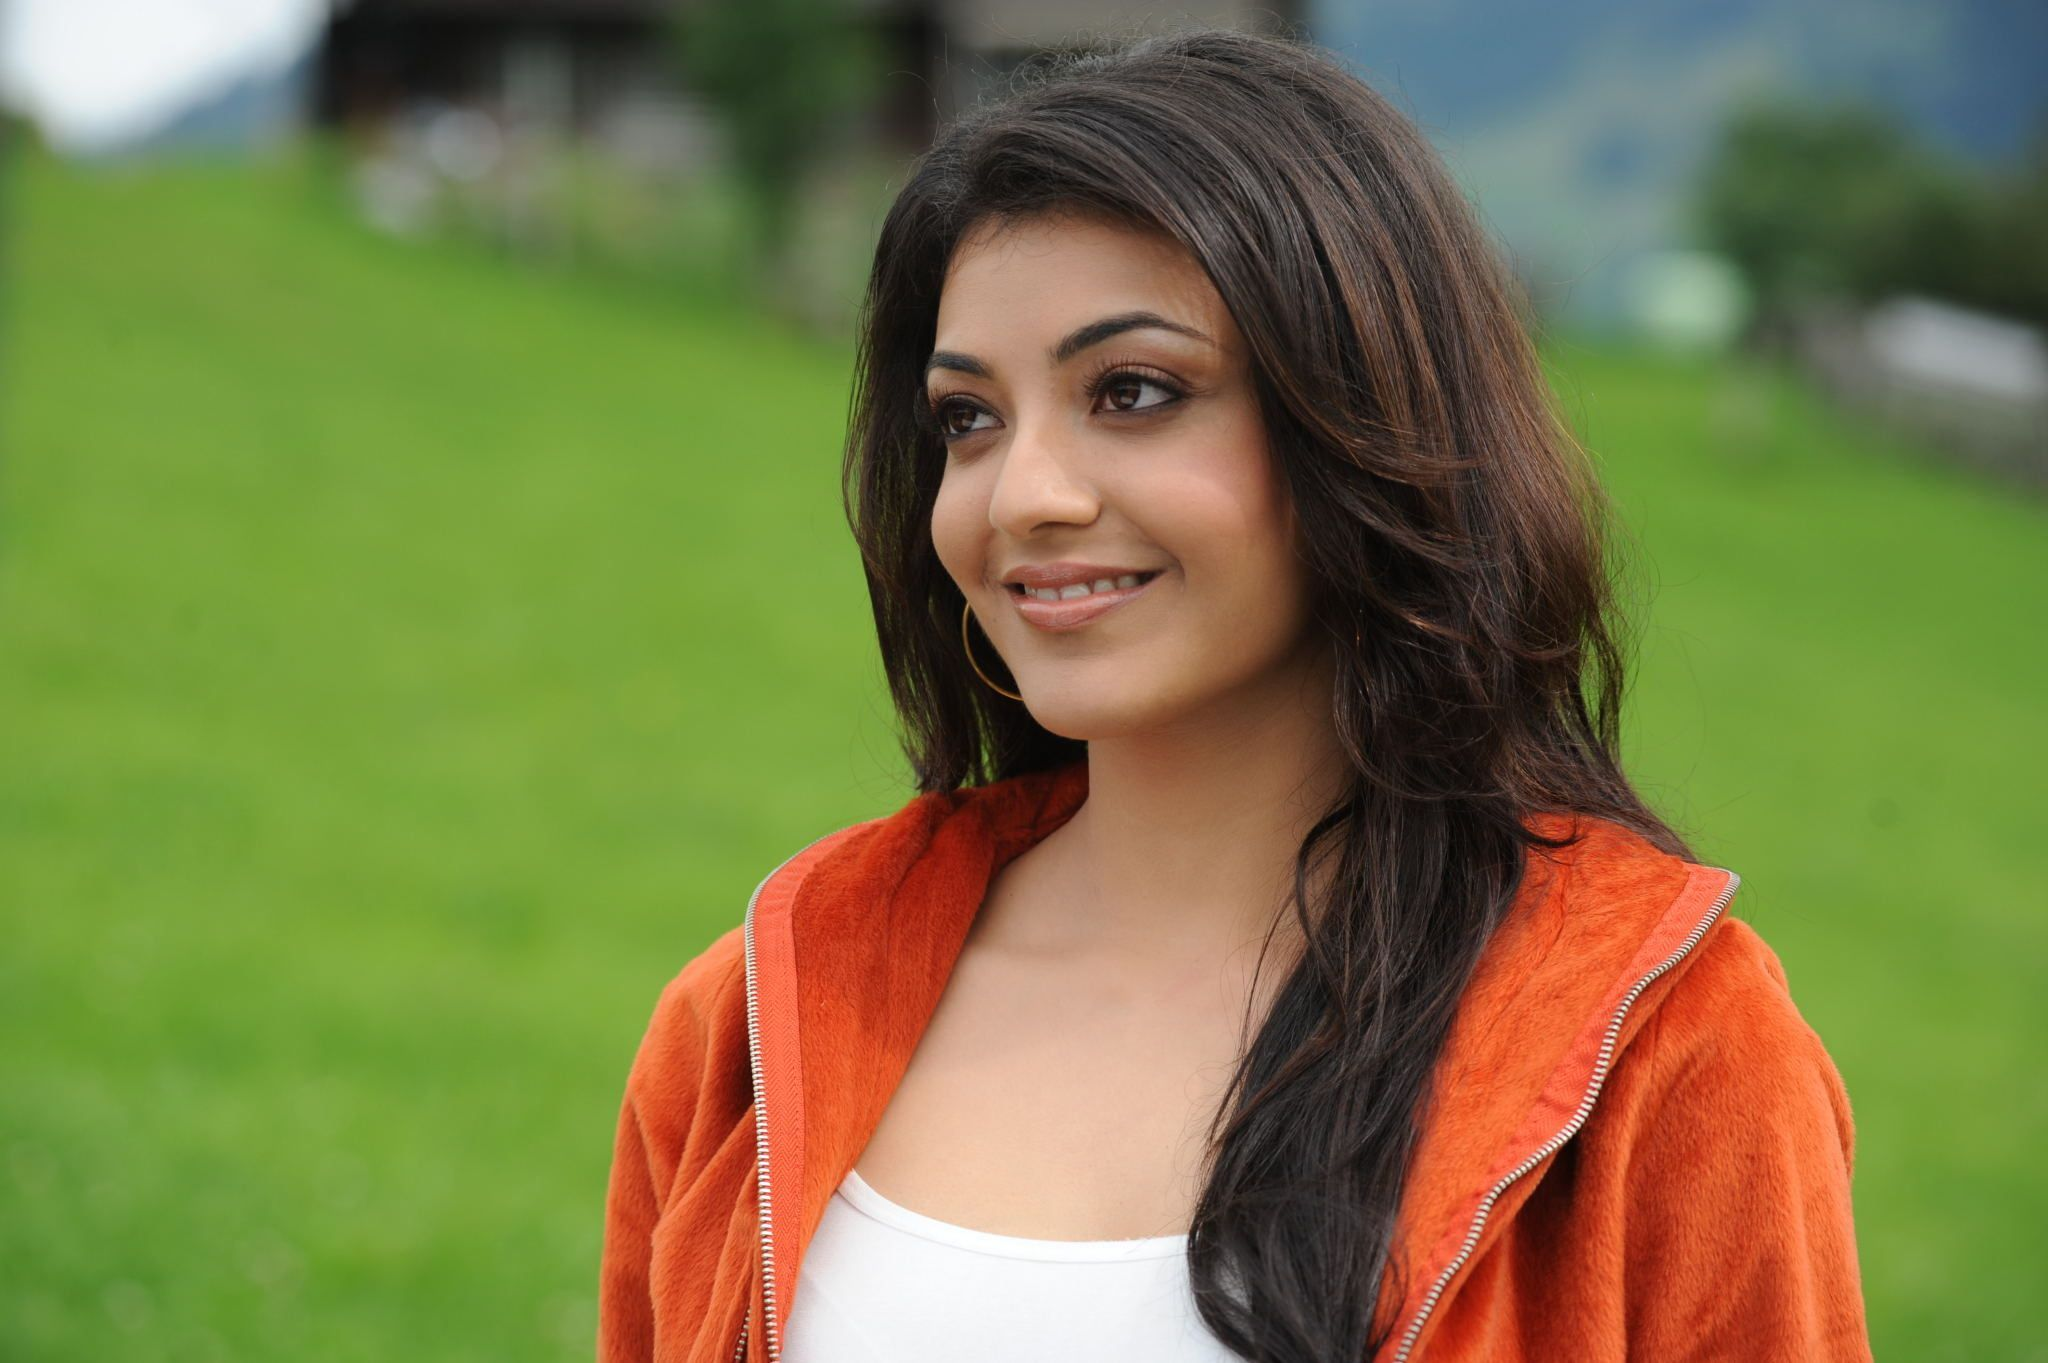 kajal agarwal hot photo gallery | kajal agarwal | pinterest